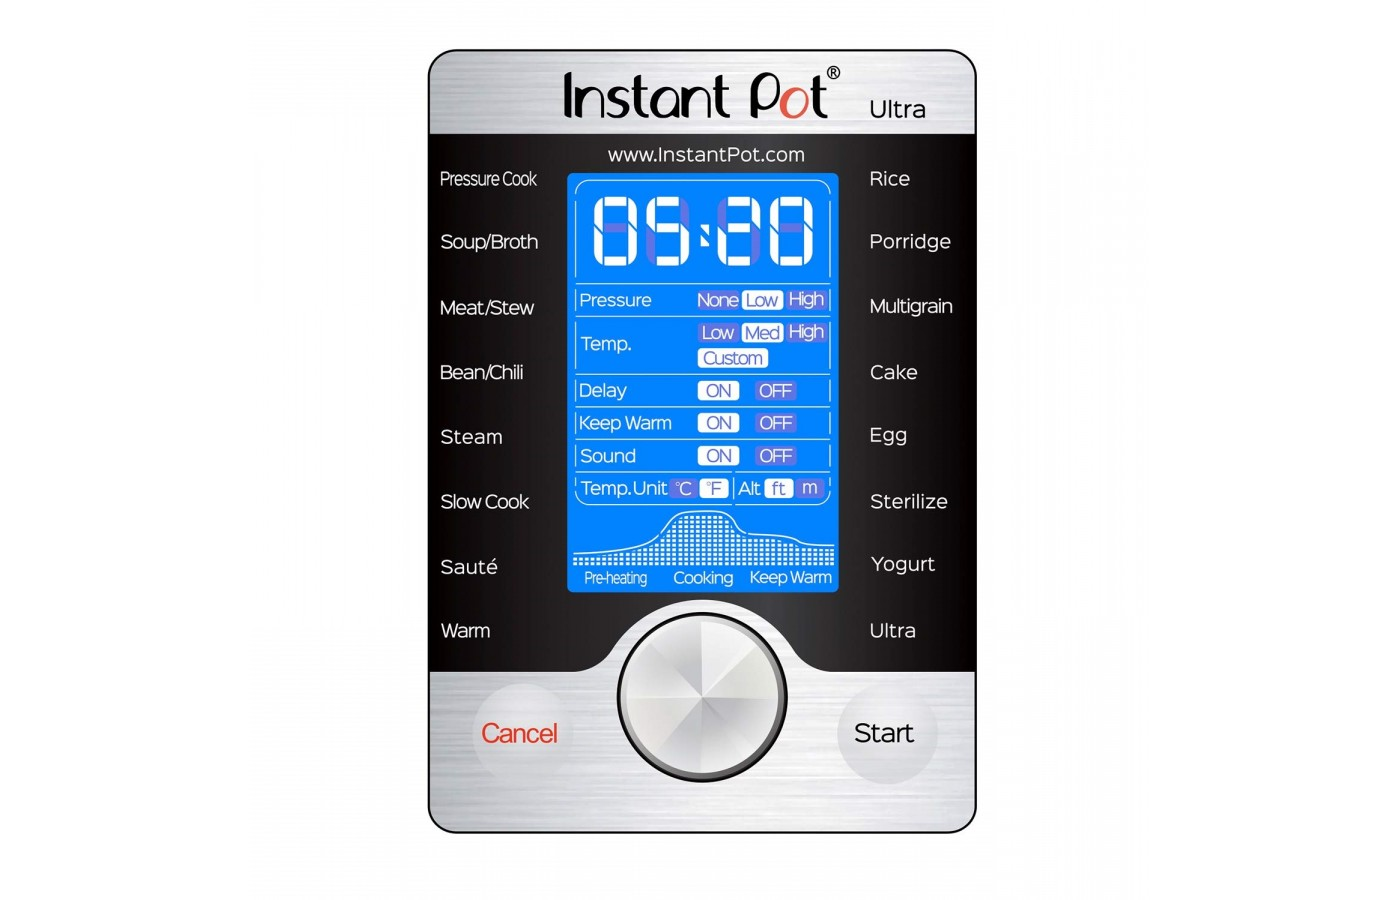 The Instant Pot Duo offers a large and clear display for ease of use.